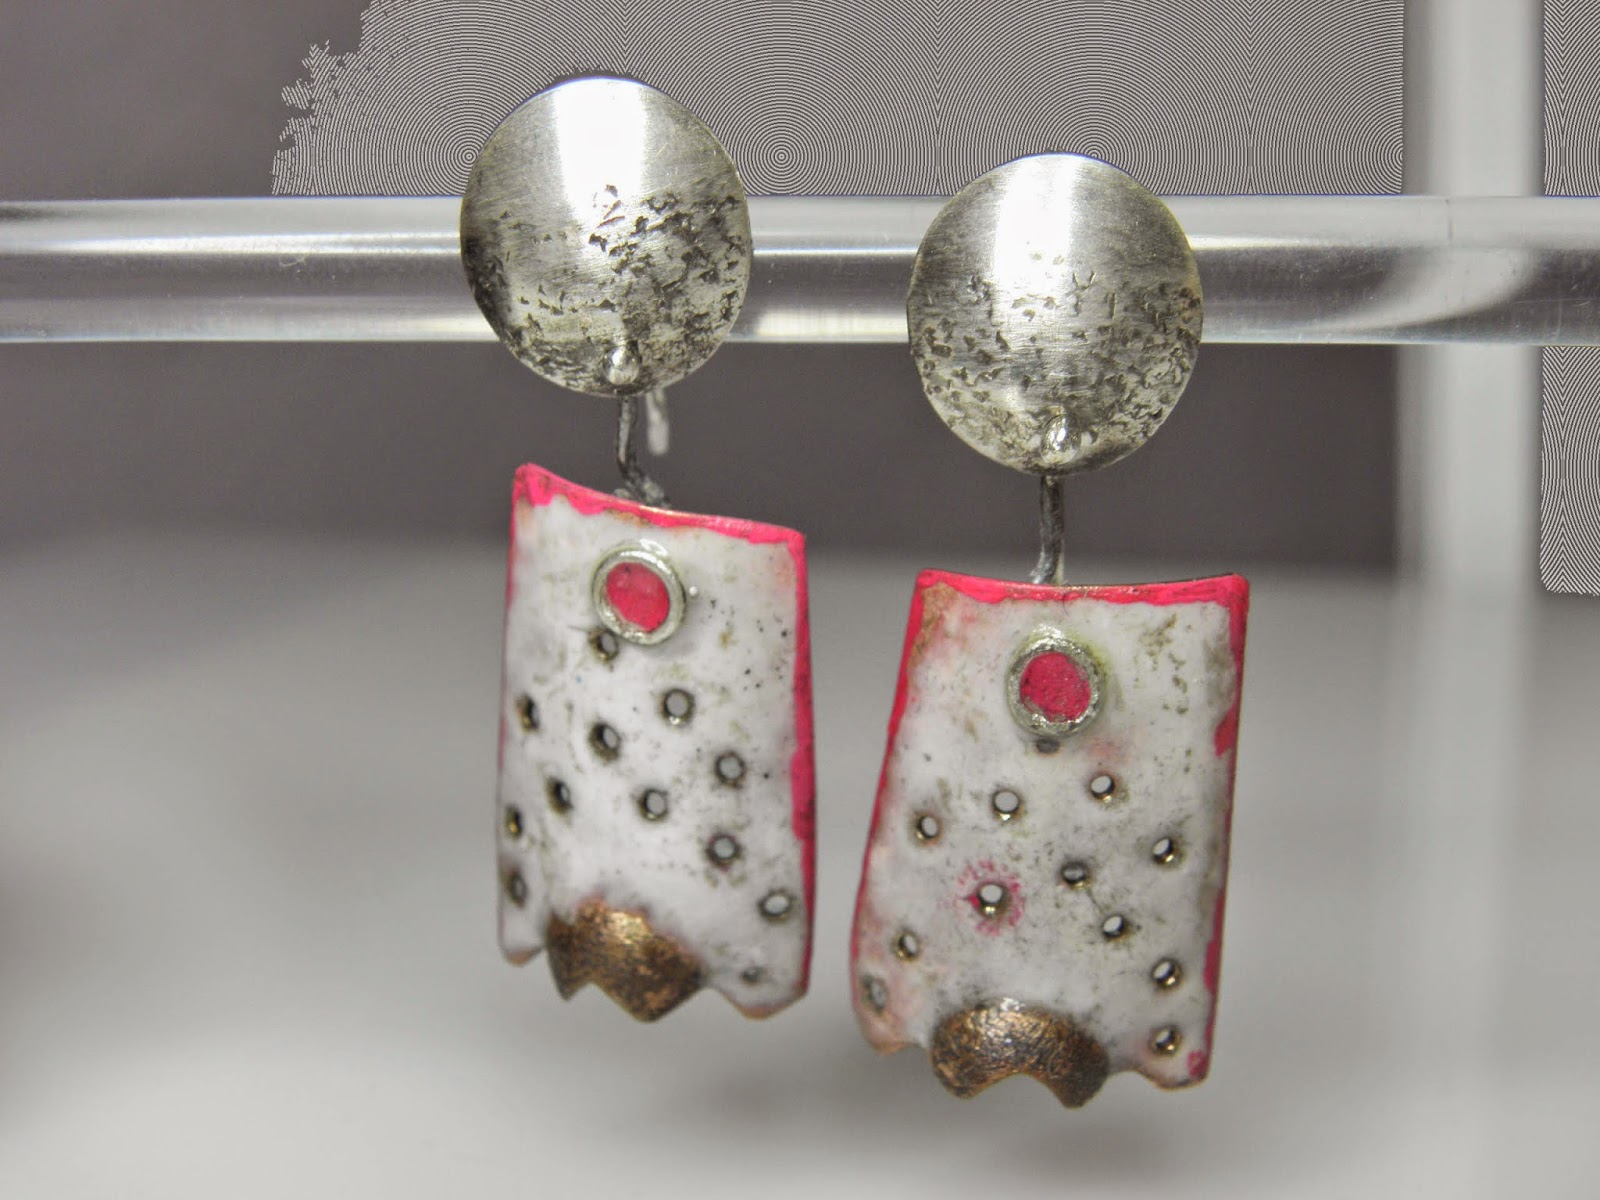 https://www.etsy.com/listing/188235044/enamel-earrings-artistic-jewelry-white?ref=listing-shop-header-0